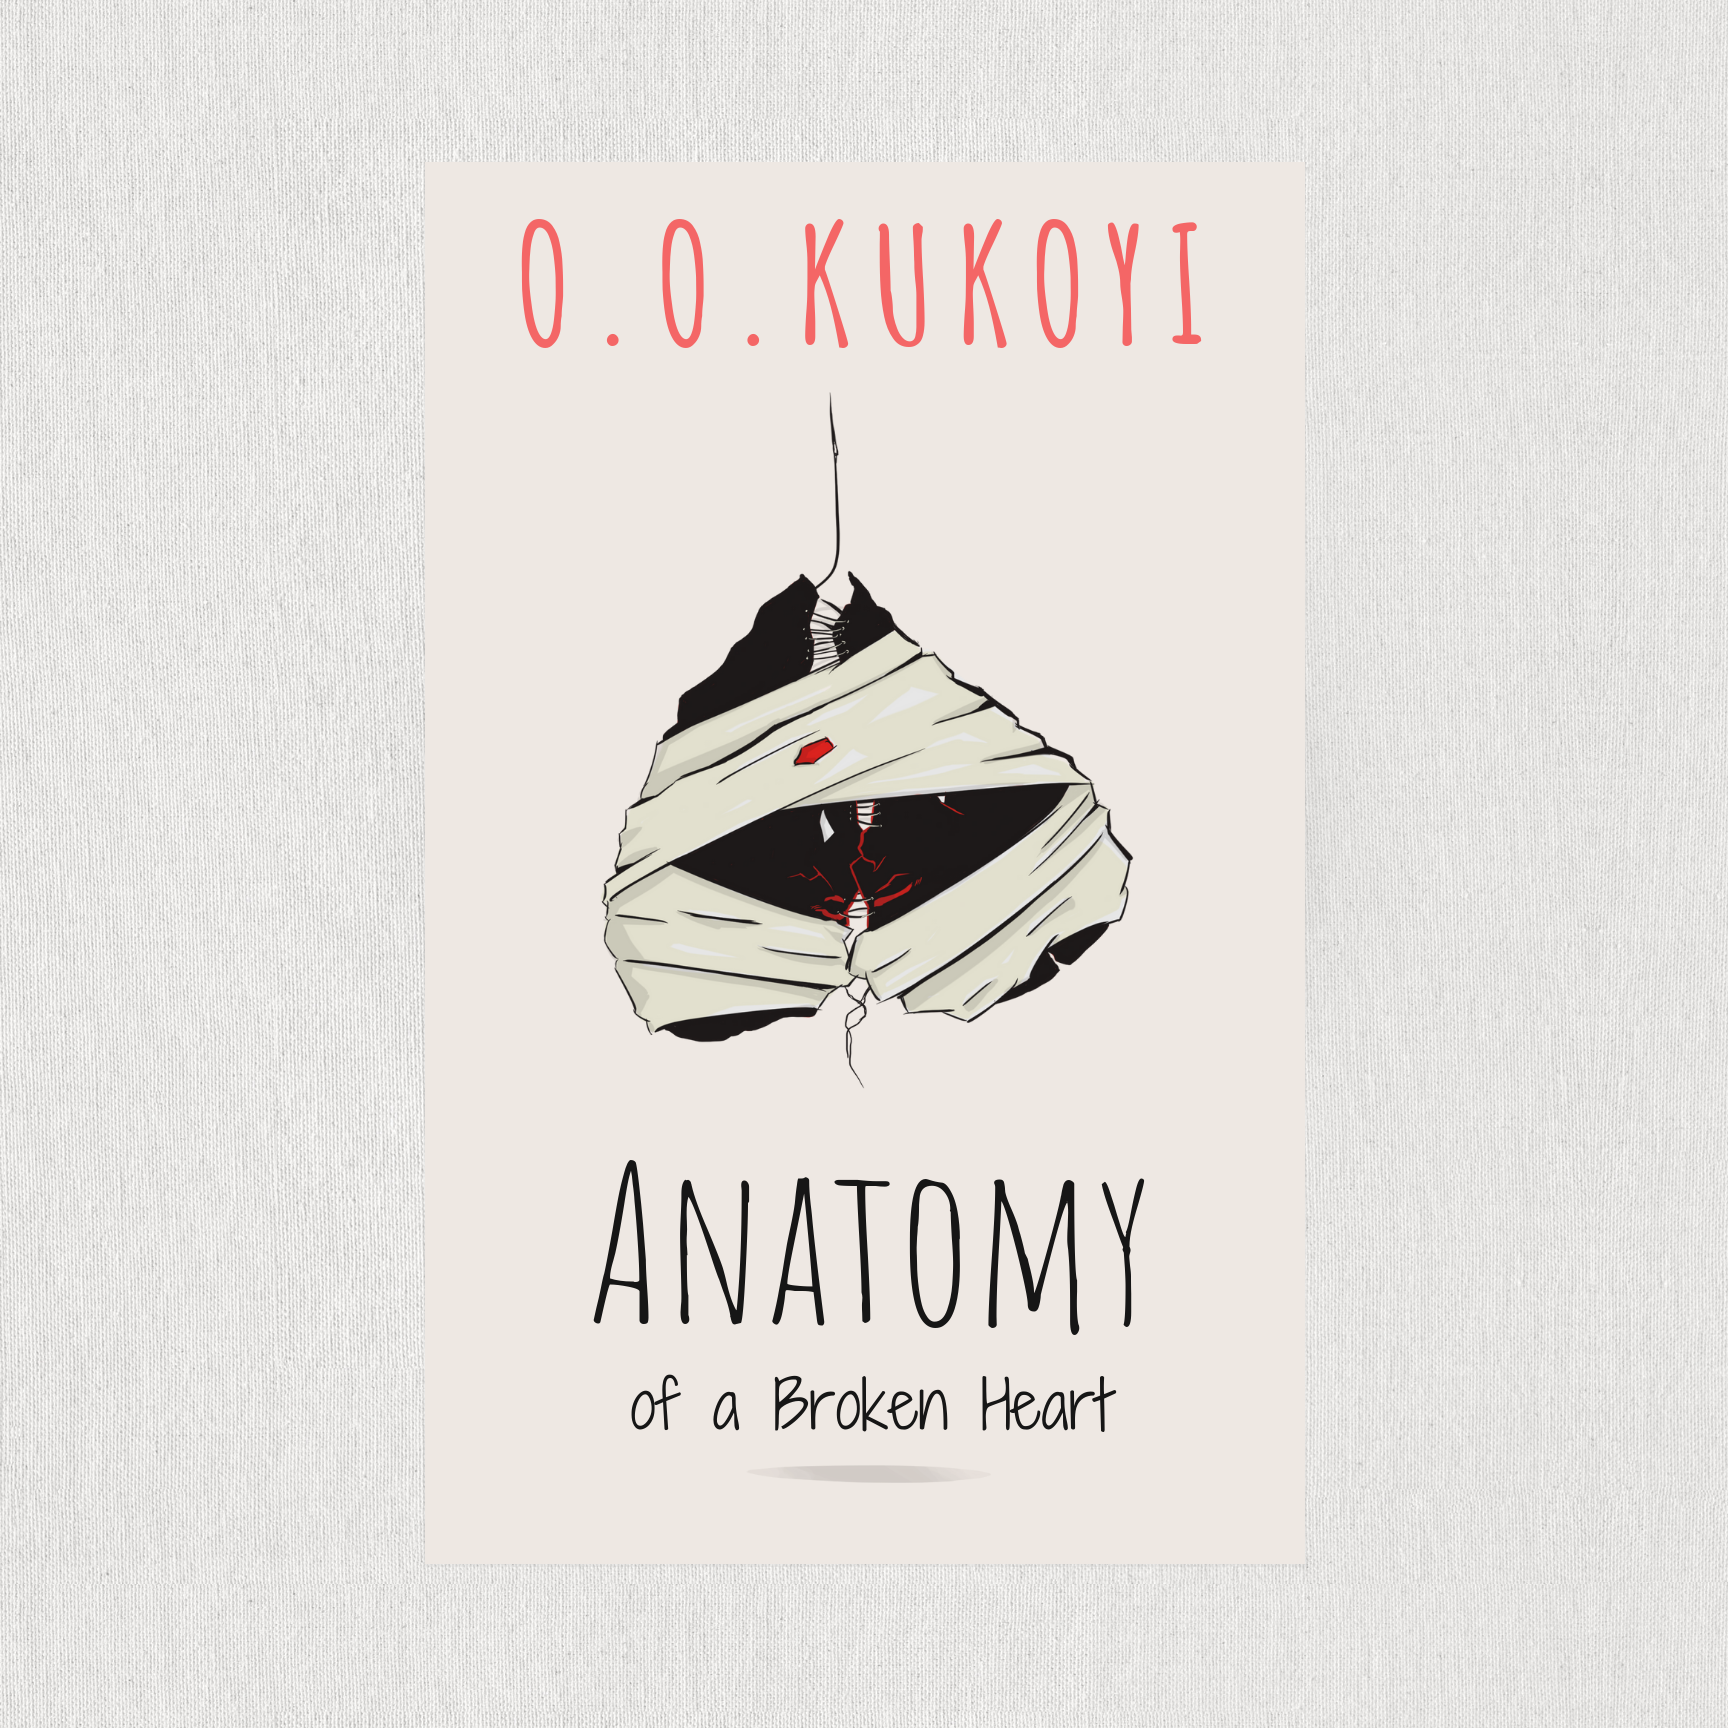 Anatomy of a broken heart by O.O.Kukoyi.png